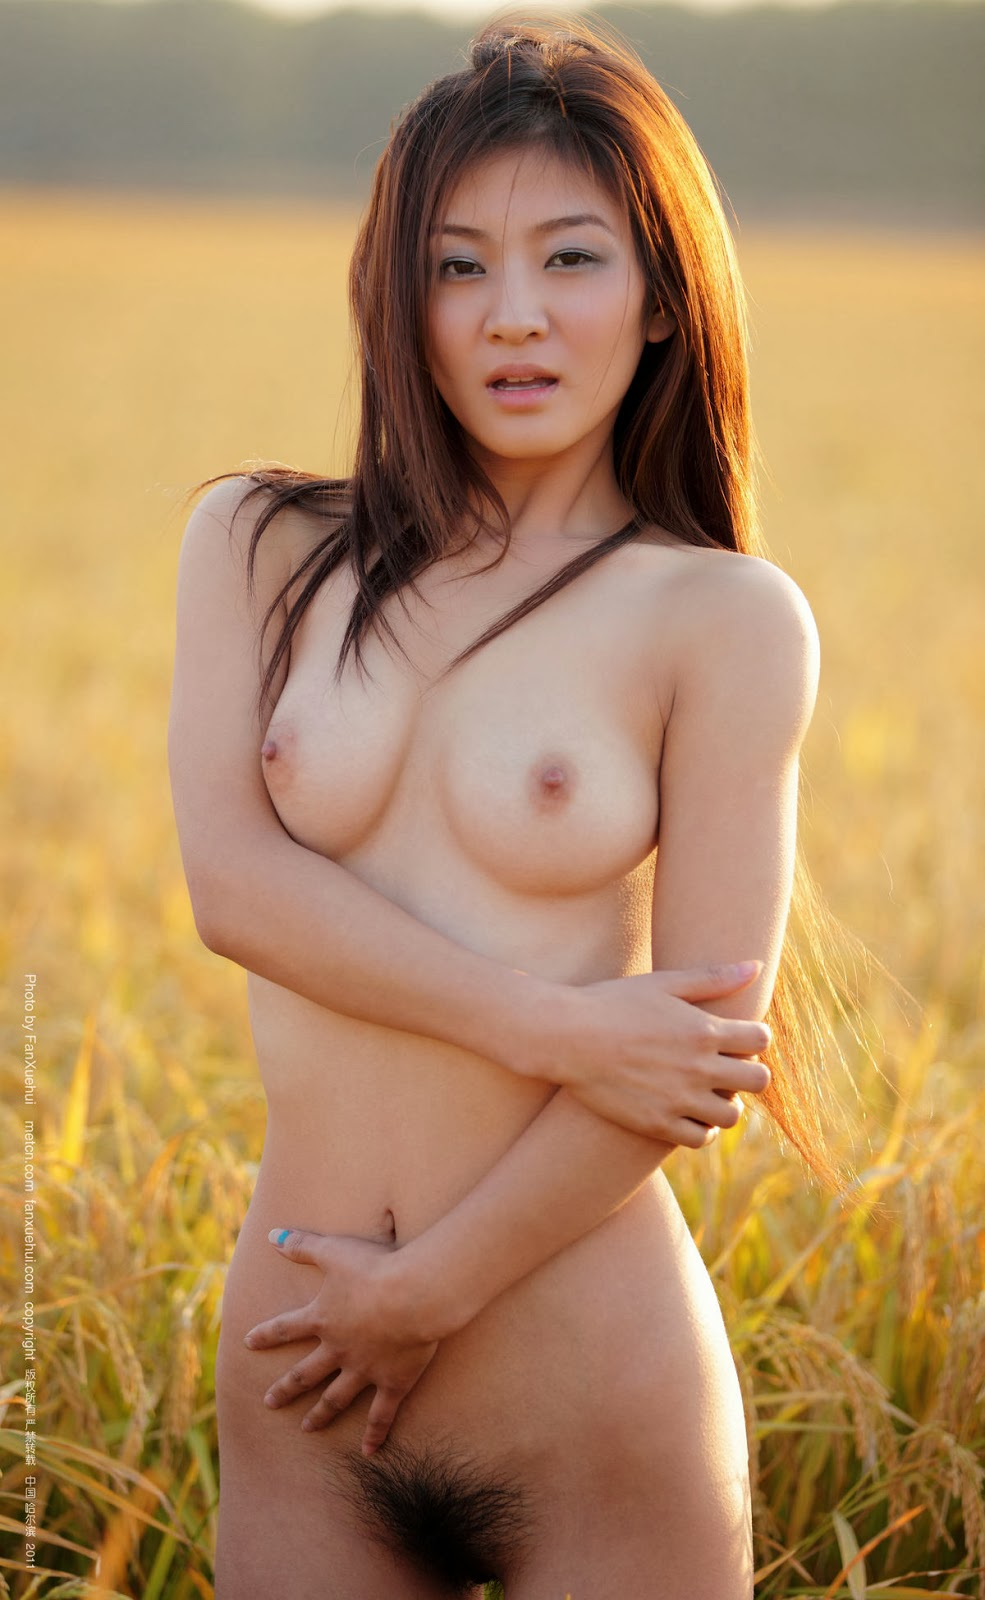 Maoming pussy Chinese